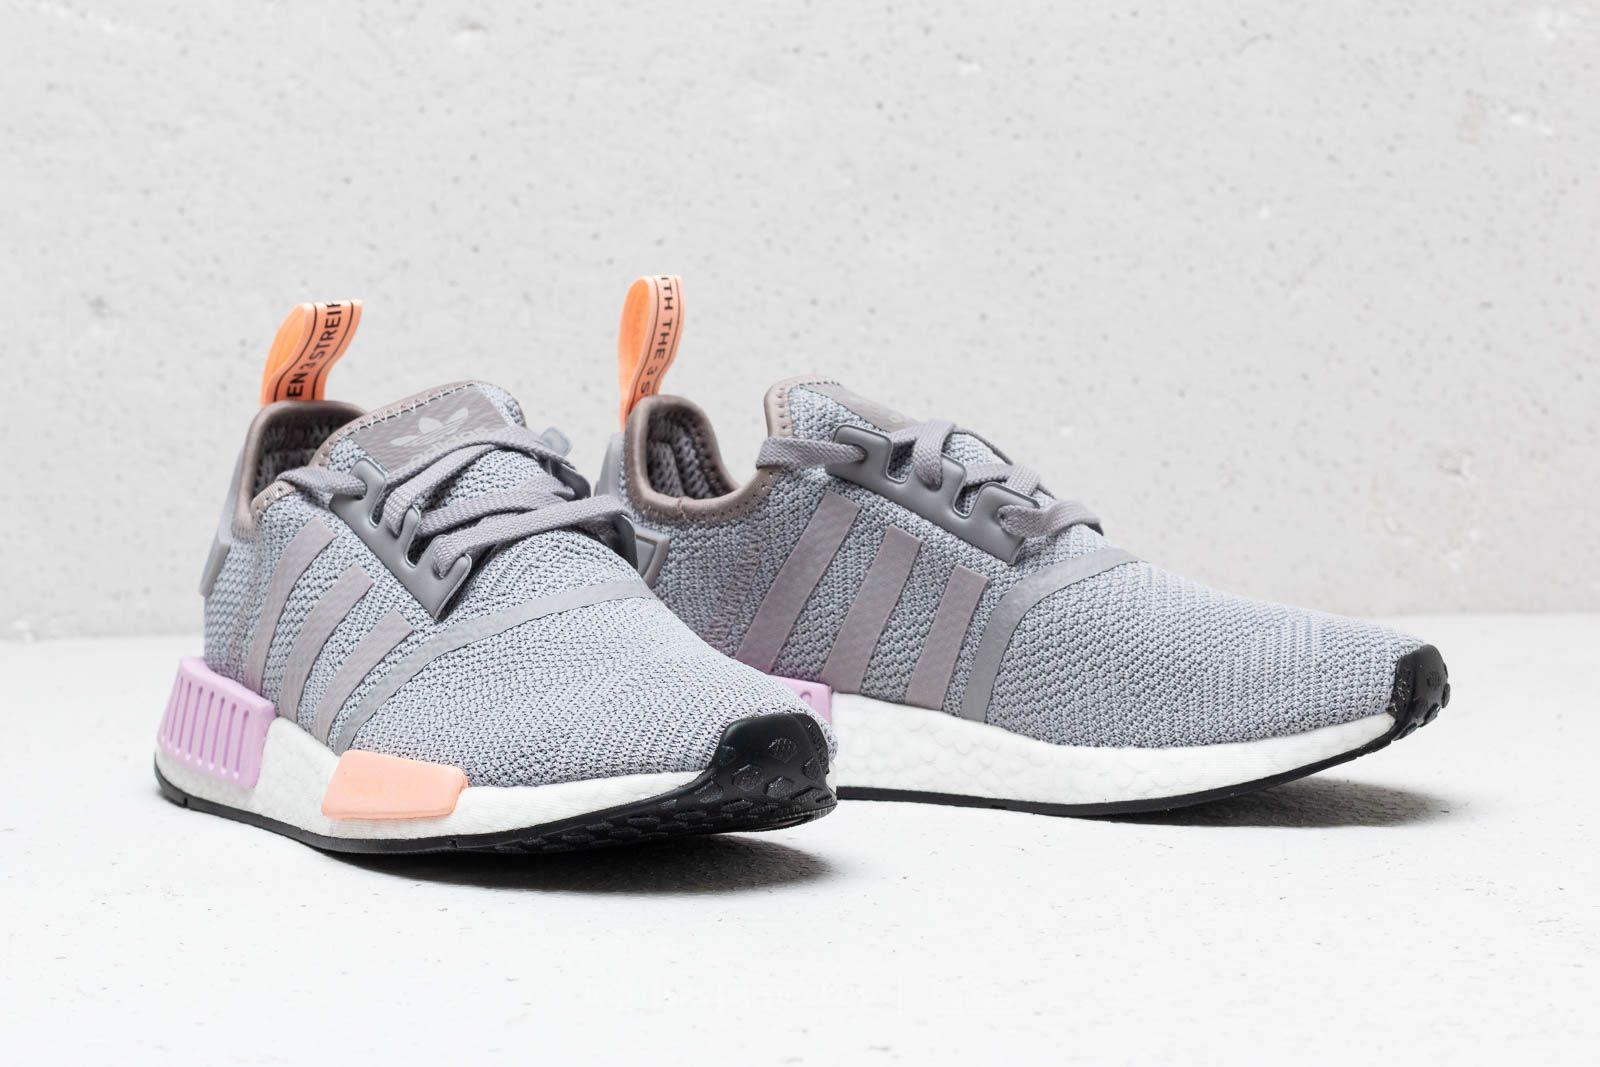 76c7af8c9128f Lyst - adidas Nmd r1 Shoes in Gray